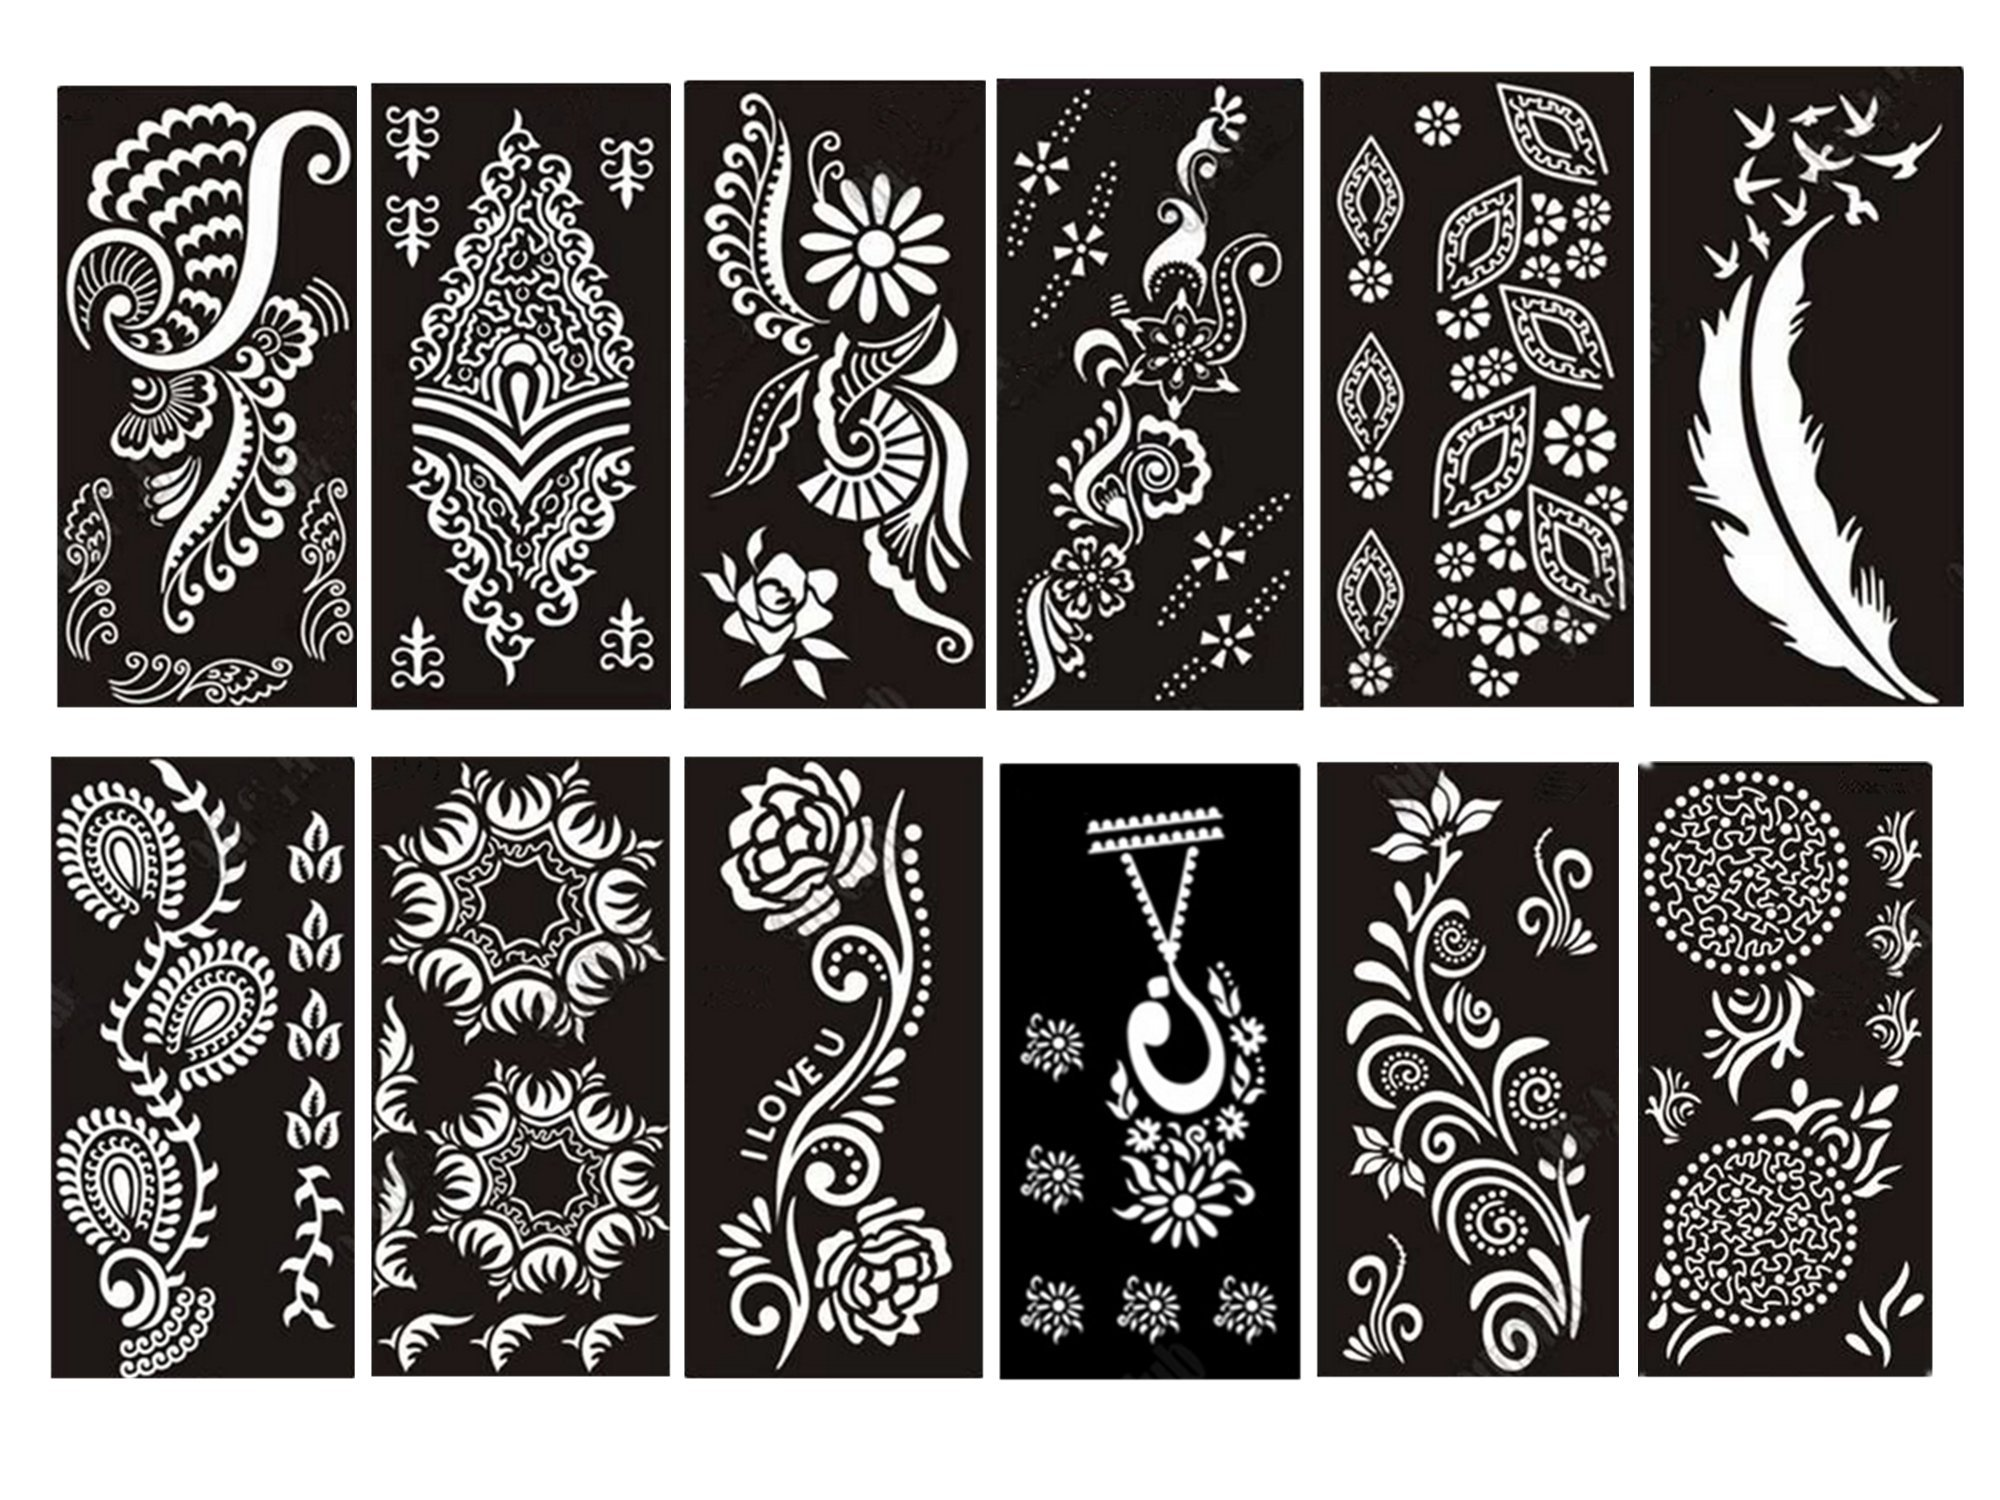 PACK of 12 Sheets Self-adhesive Henna Tattoo Stencils Template for Henna Tattoo Body Art Painting Glitter Tattoos Airbrush Tattoo by Outman